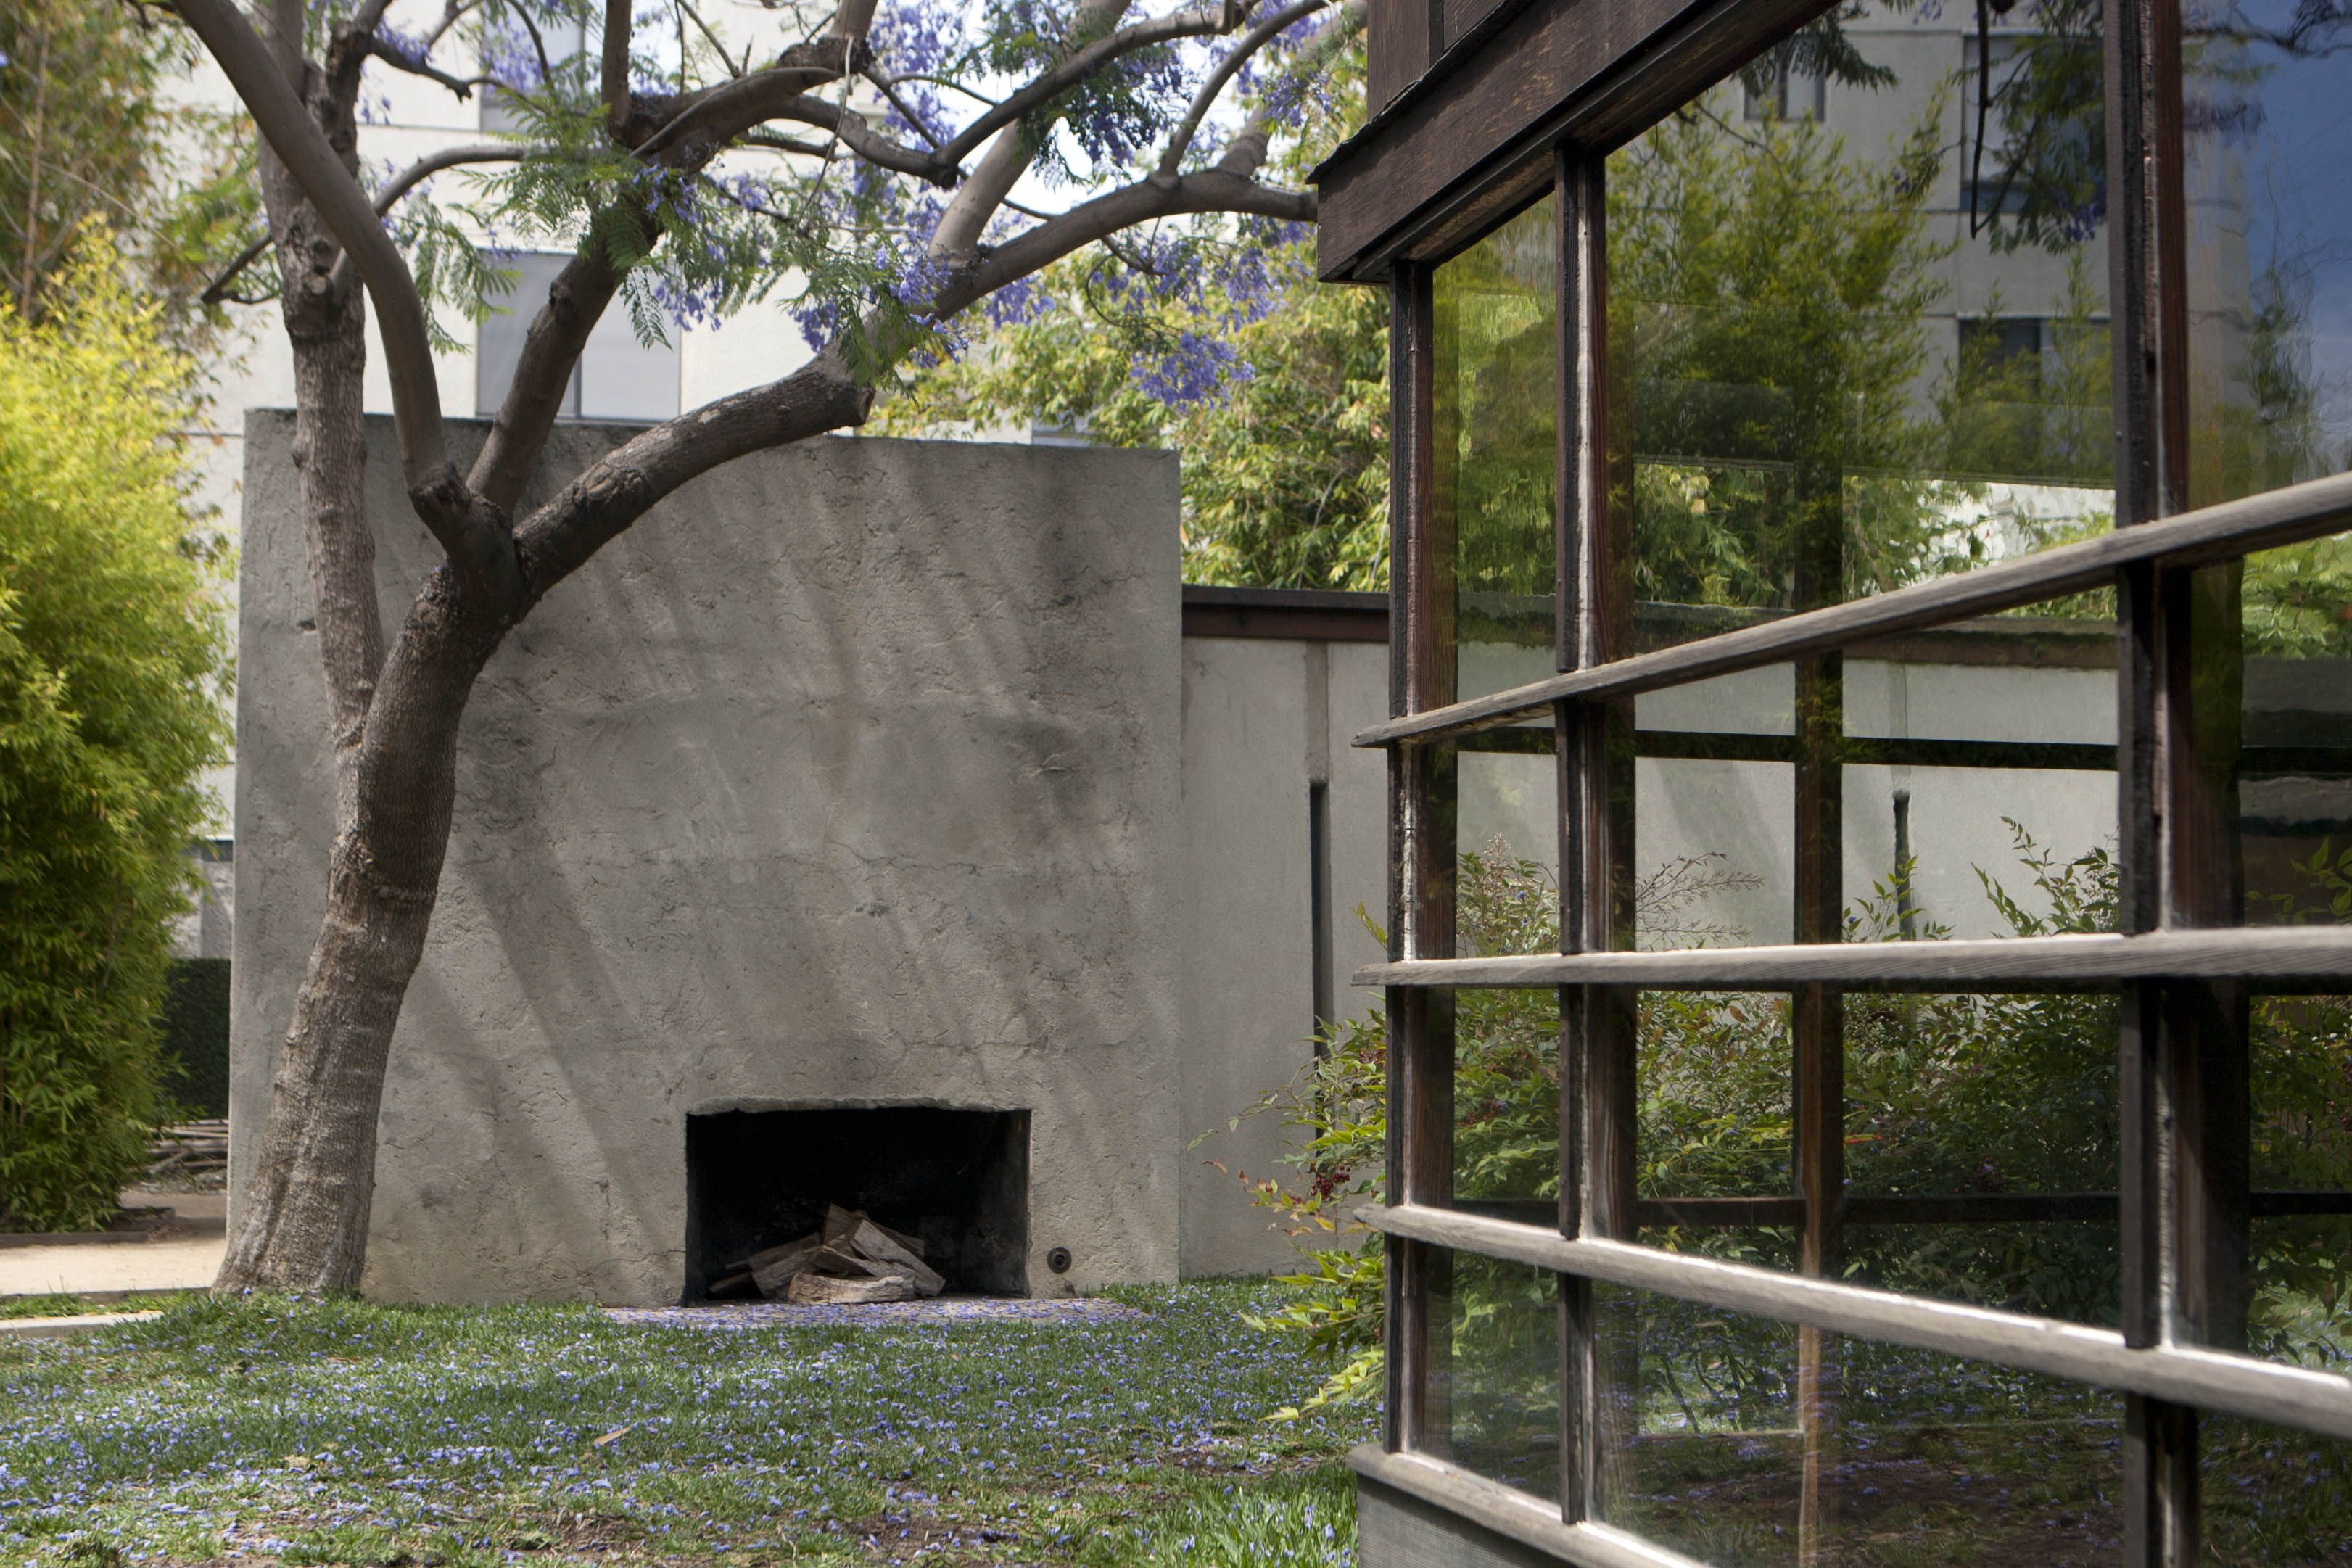 An outdoor fireplace in a concrete wall across from a wall of windows